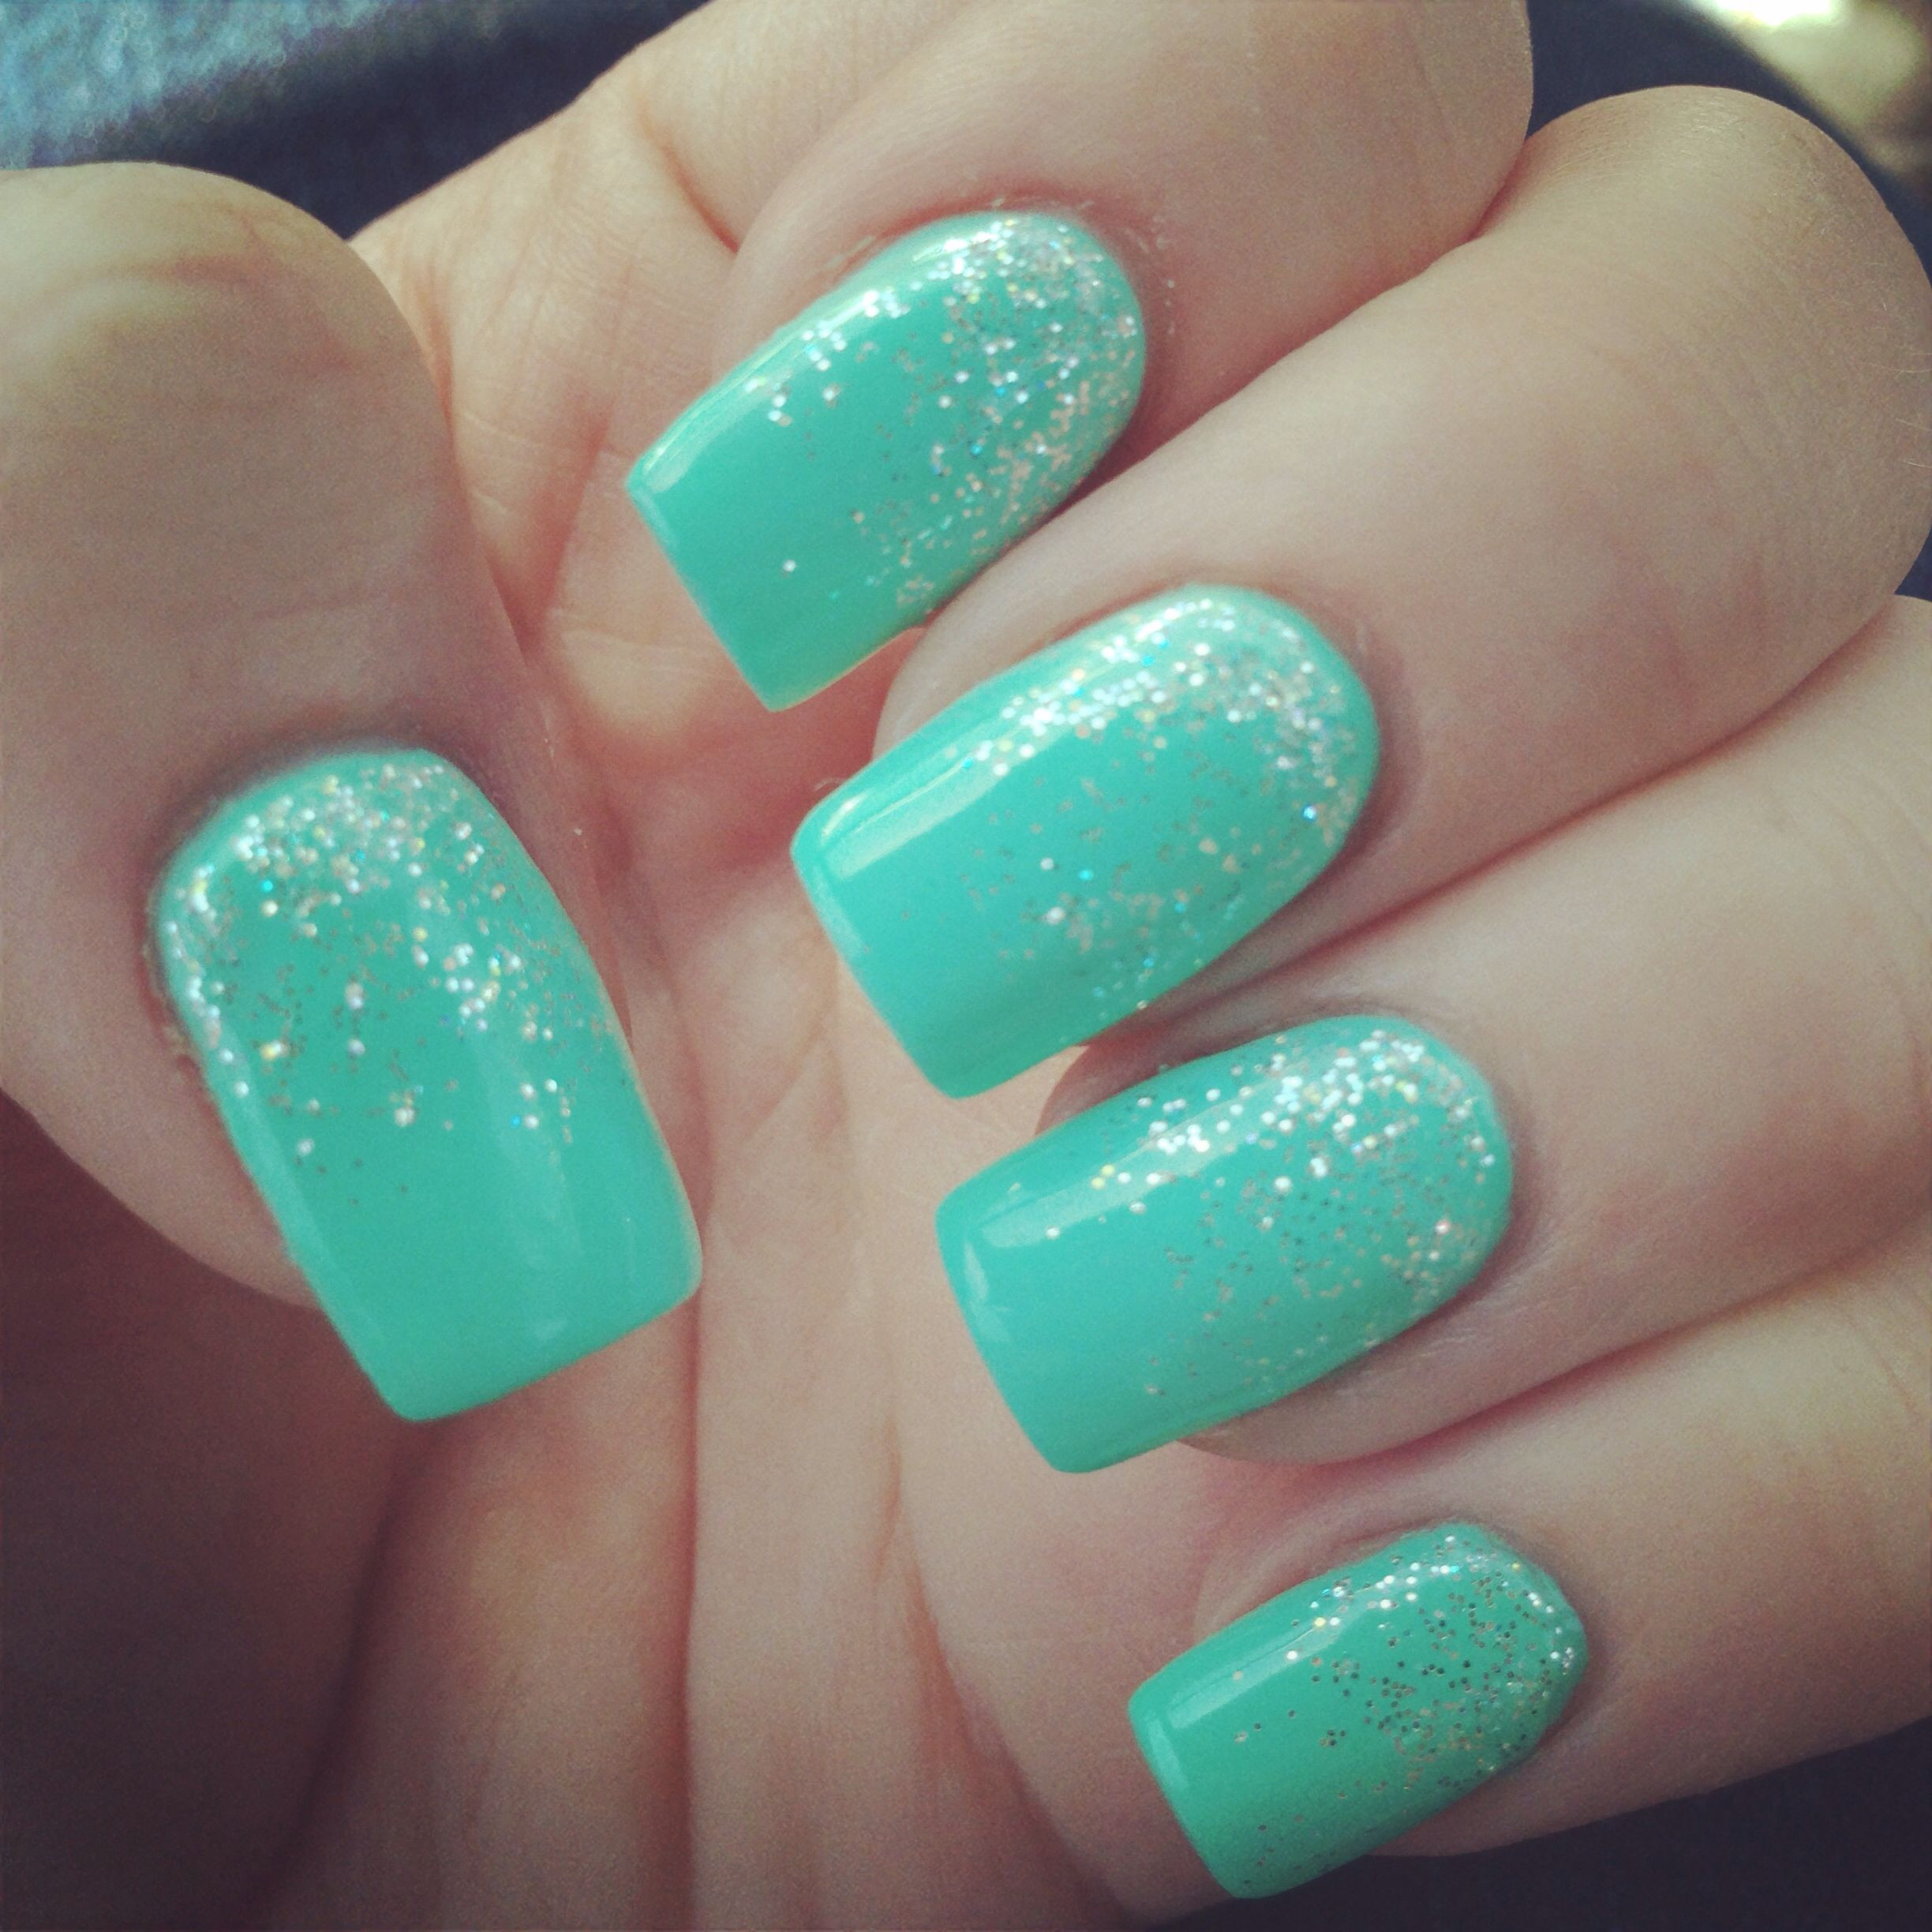 Natural Glitter Nails  Teal nails with silver glitter fading